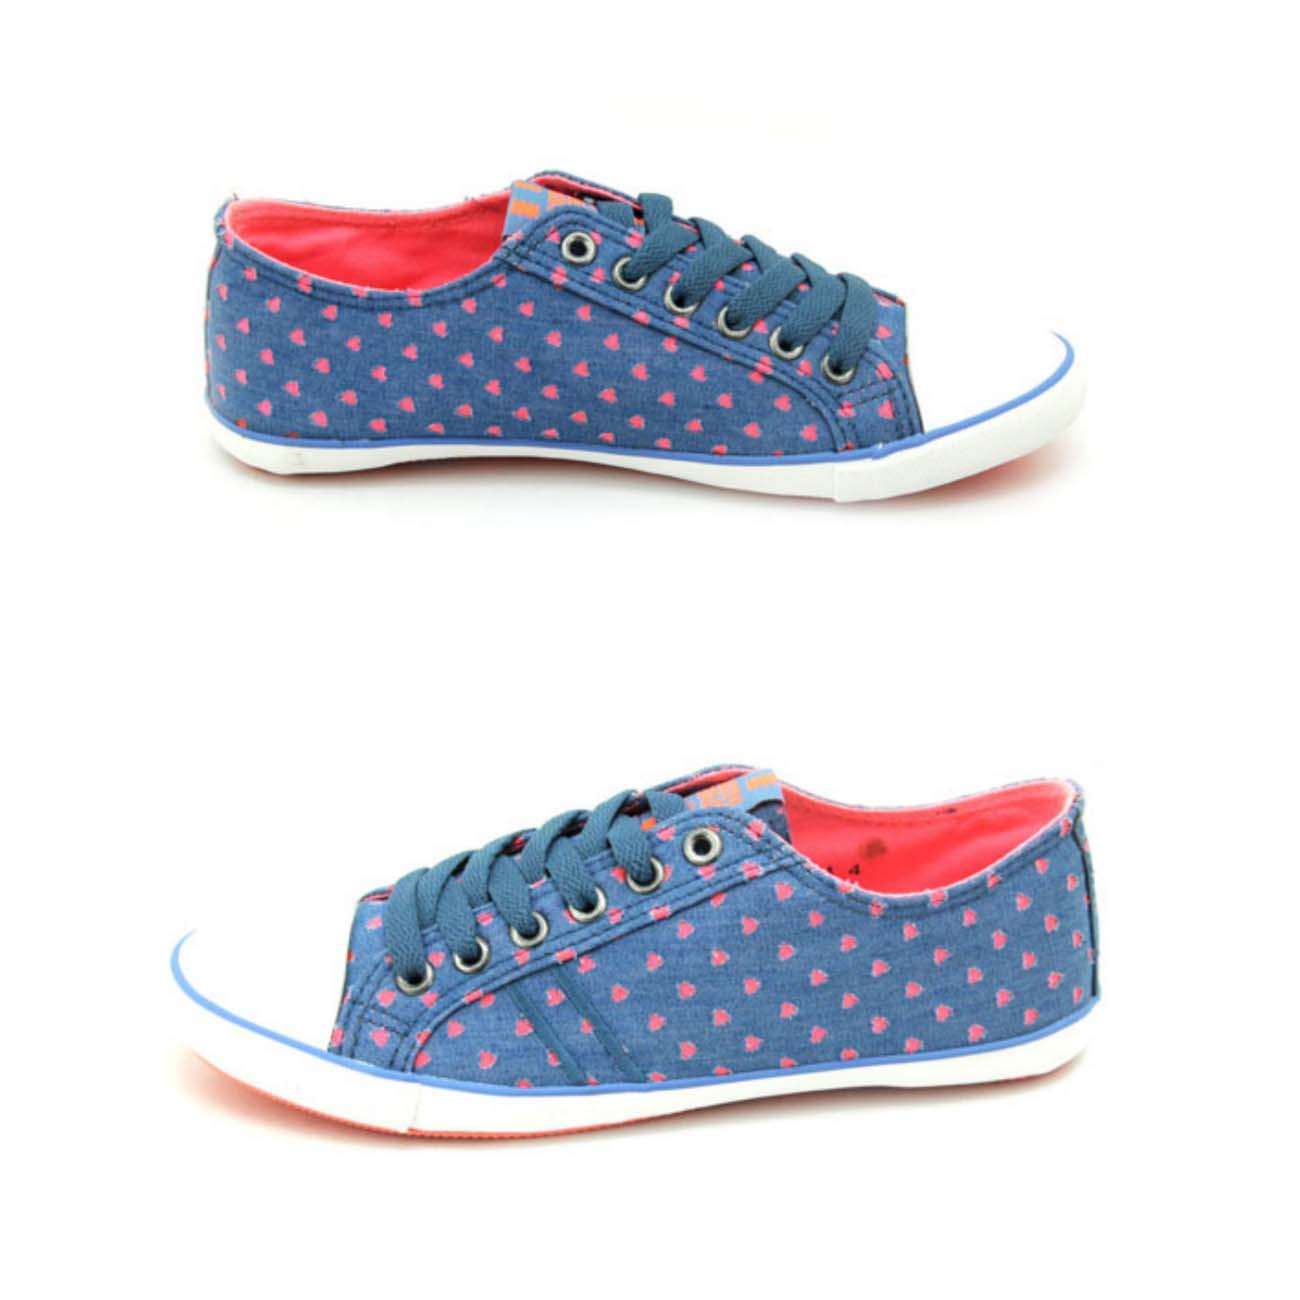 casual wear shoes by bata 2016 stylo planet